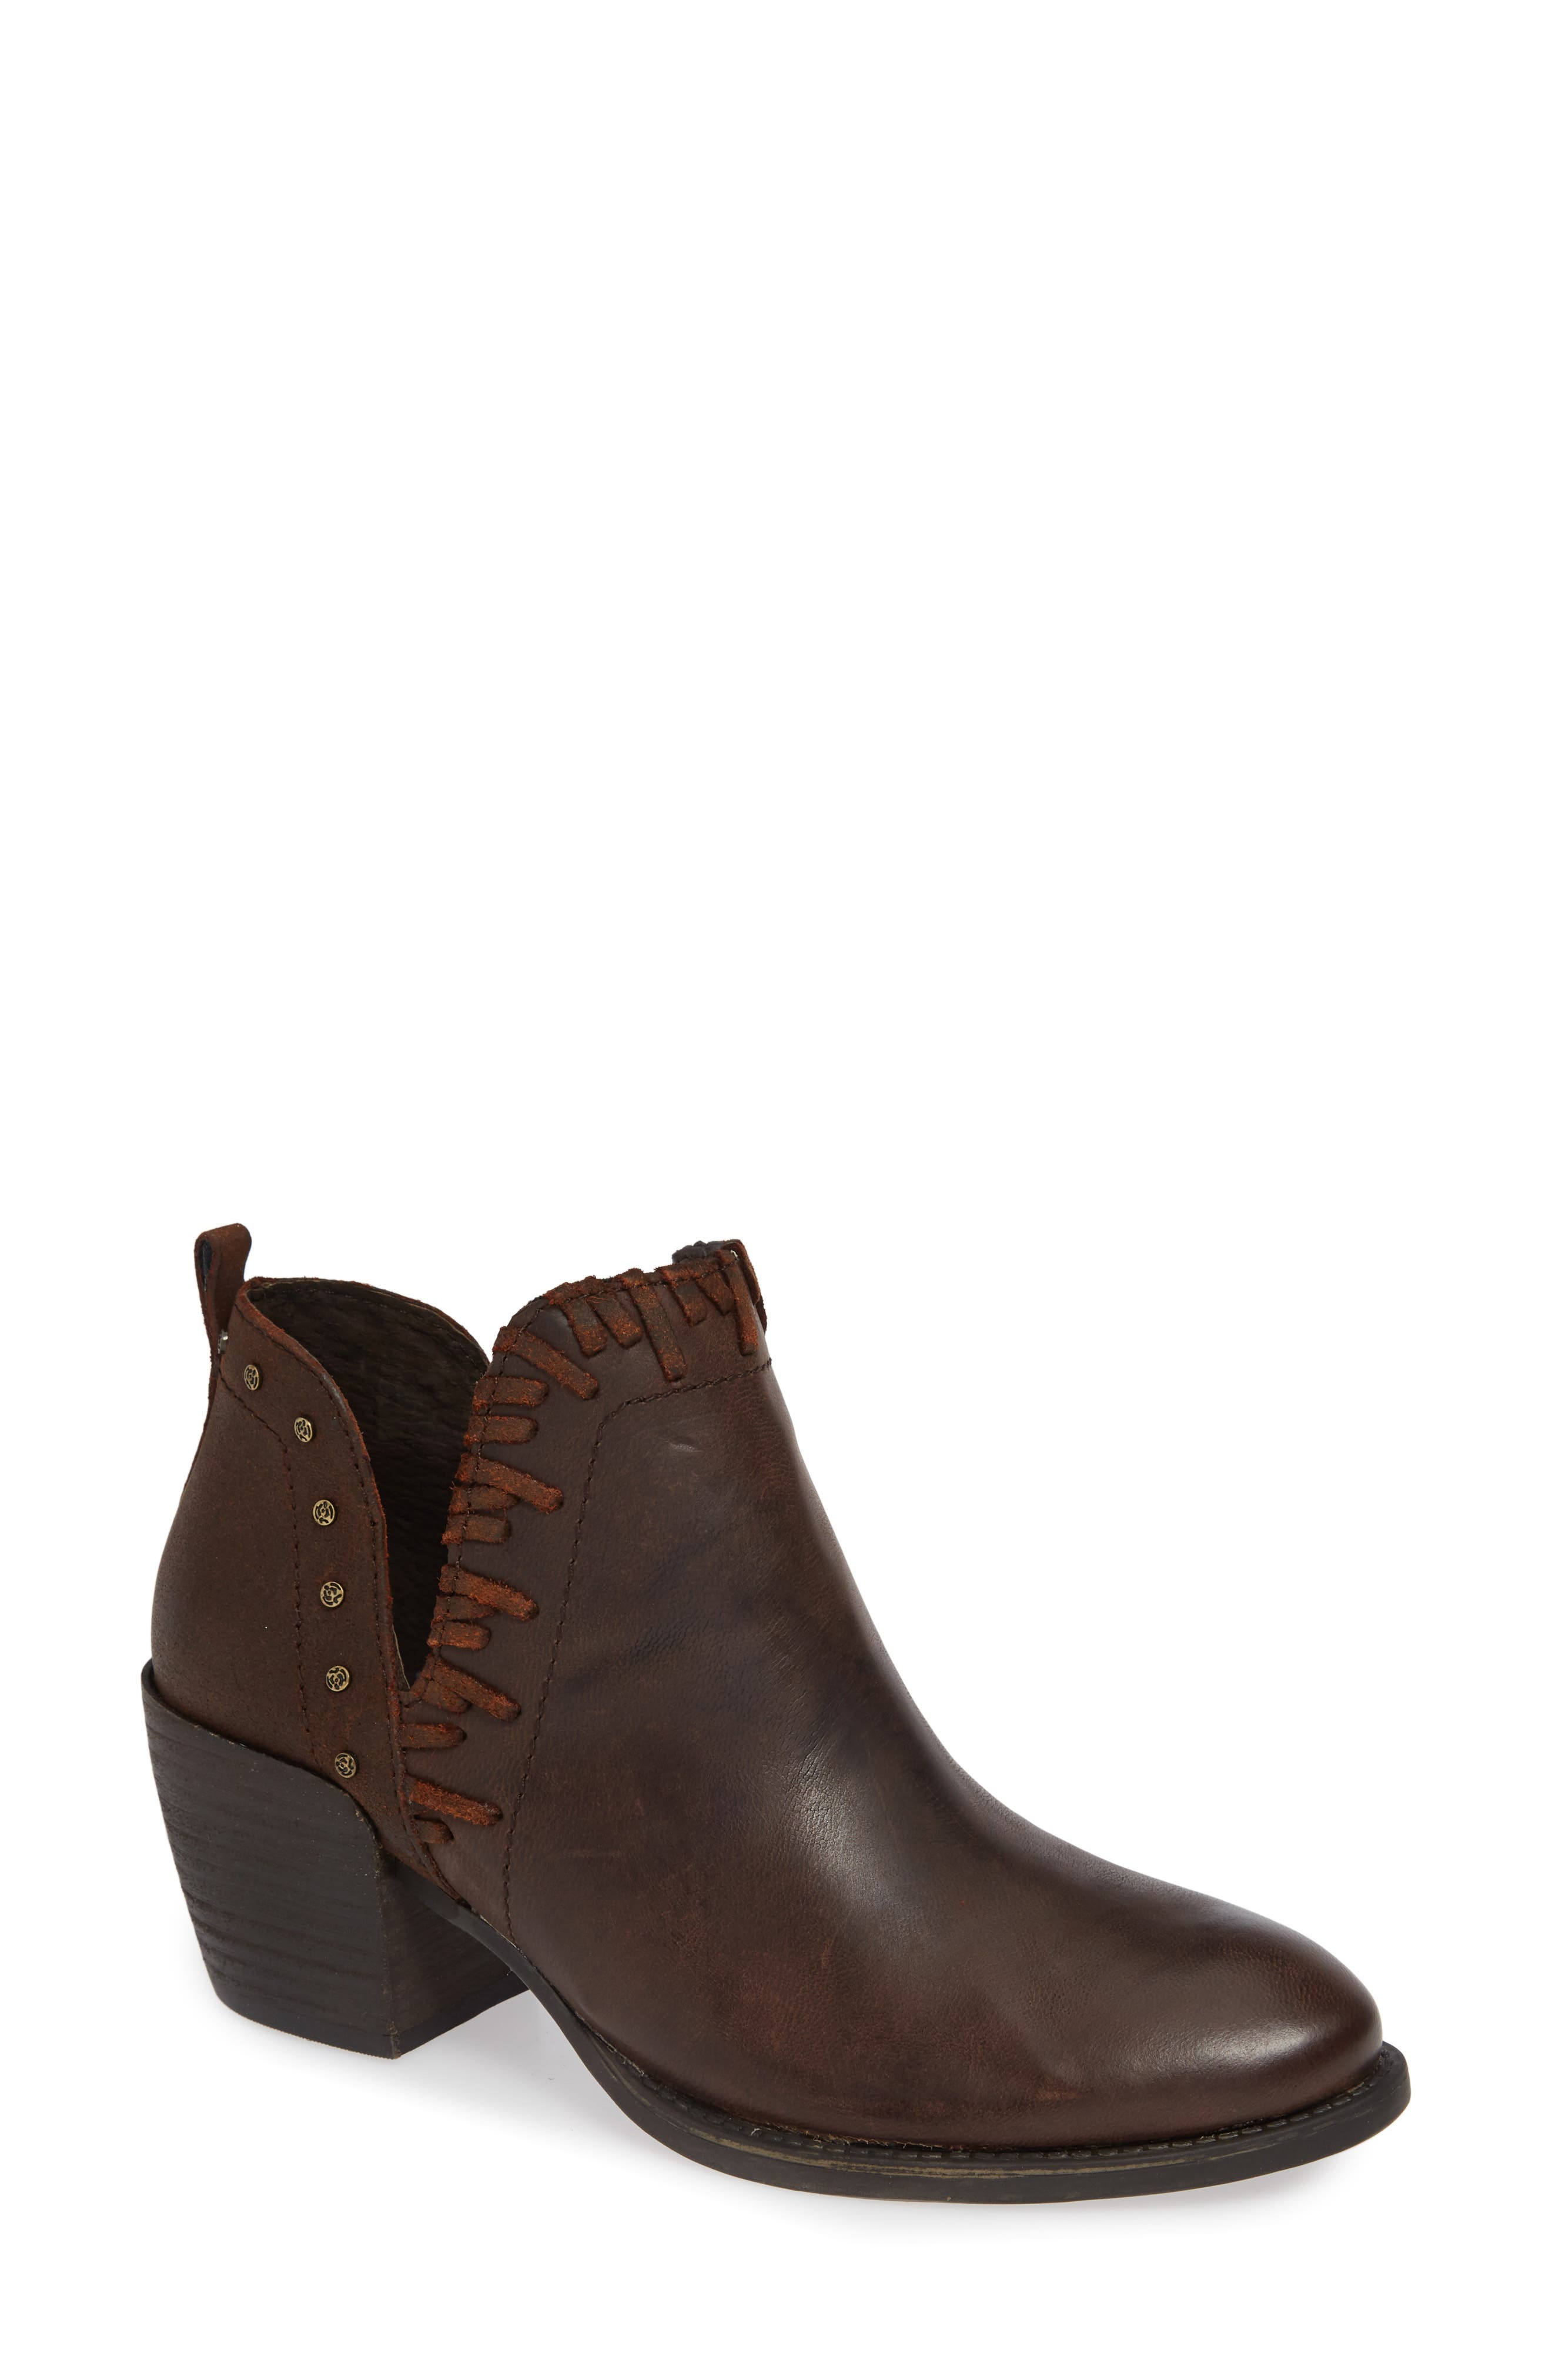 Otbt Santa Fe Ankle Bootie- Brown